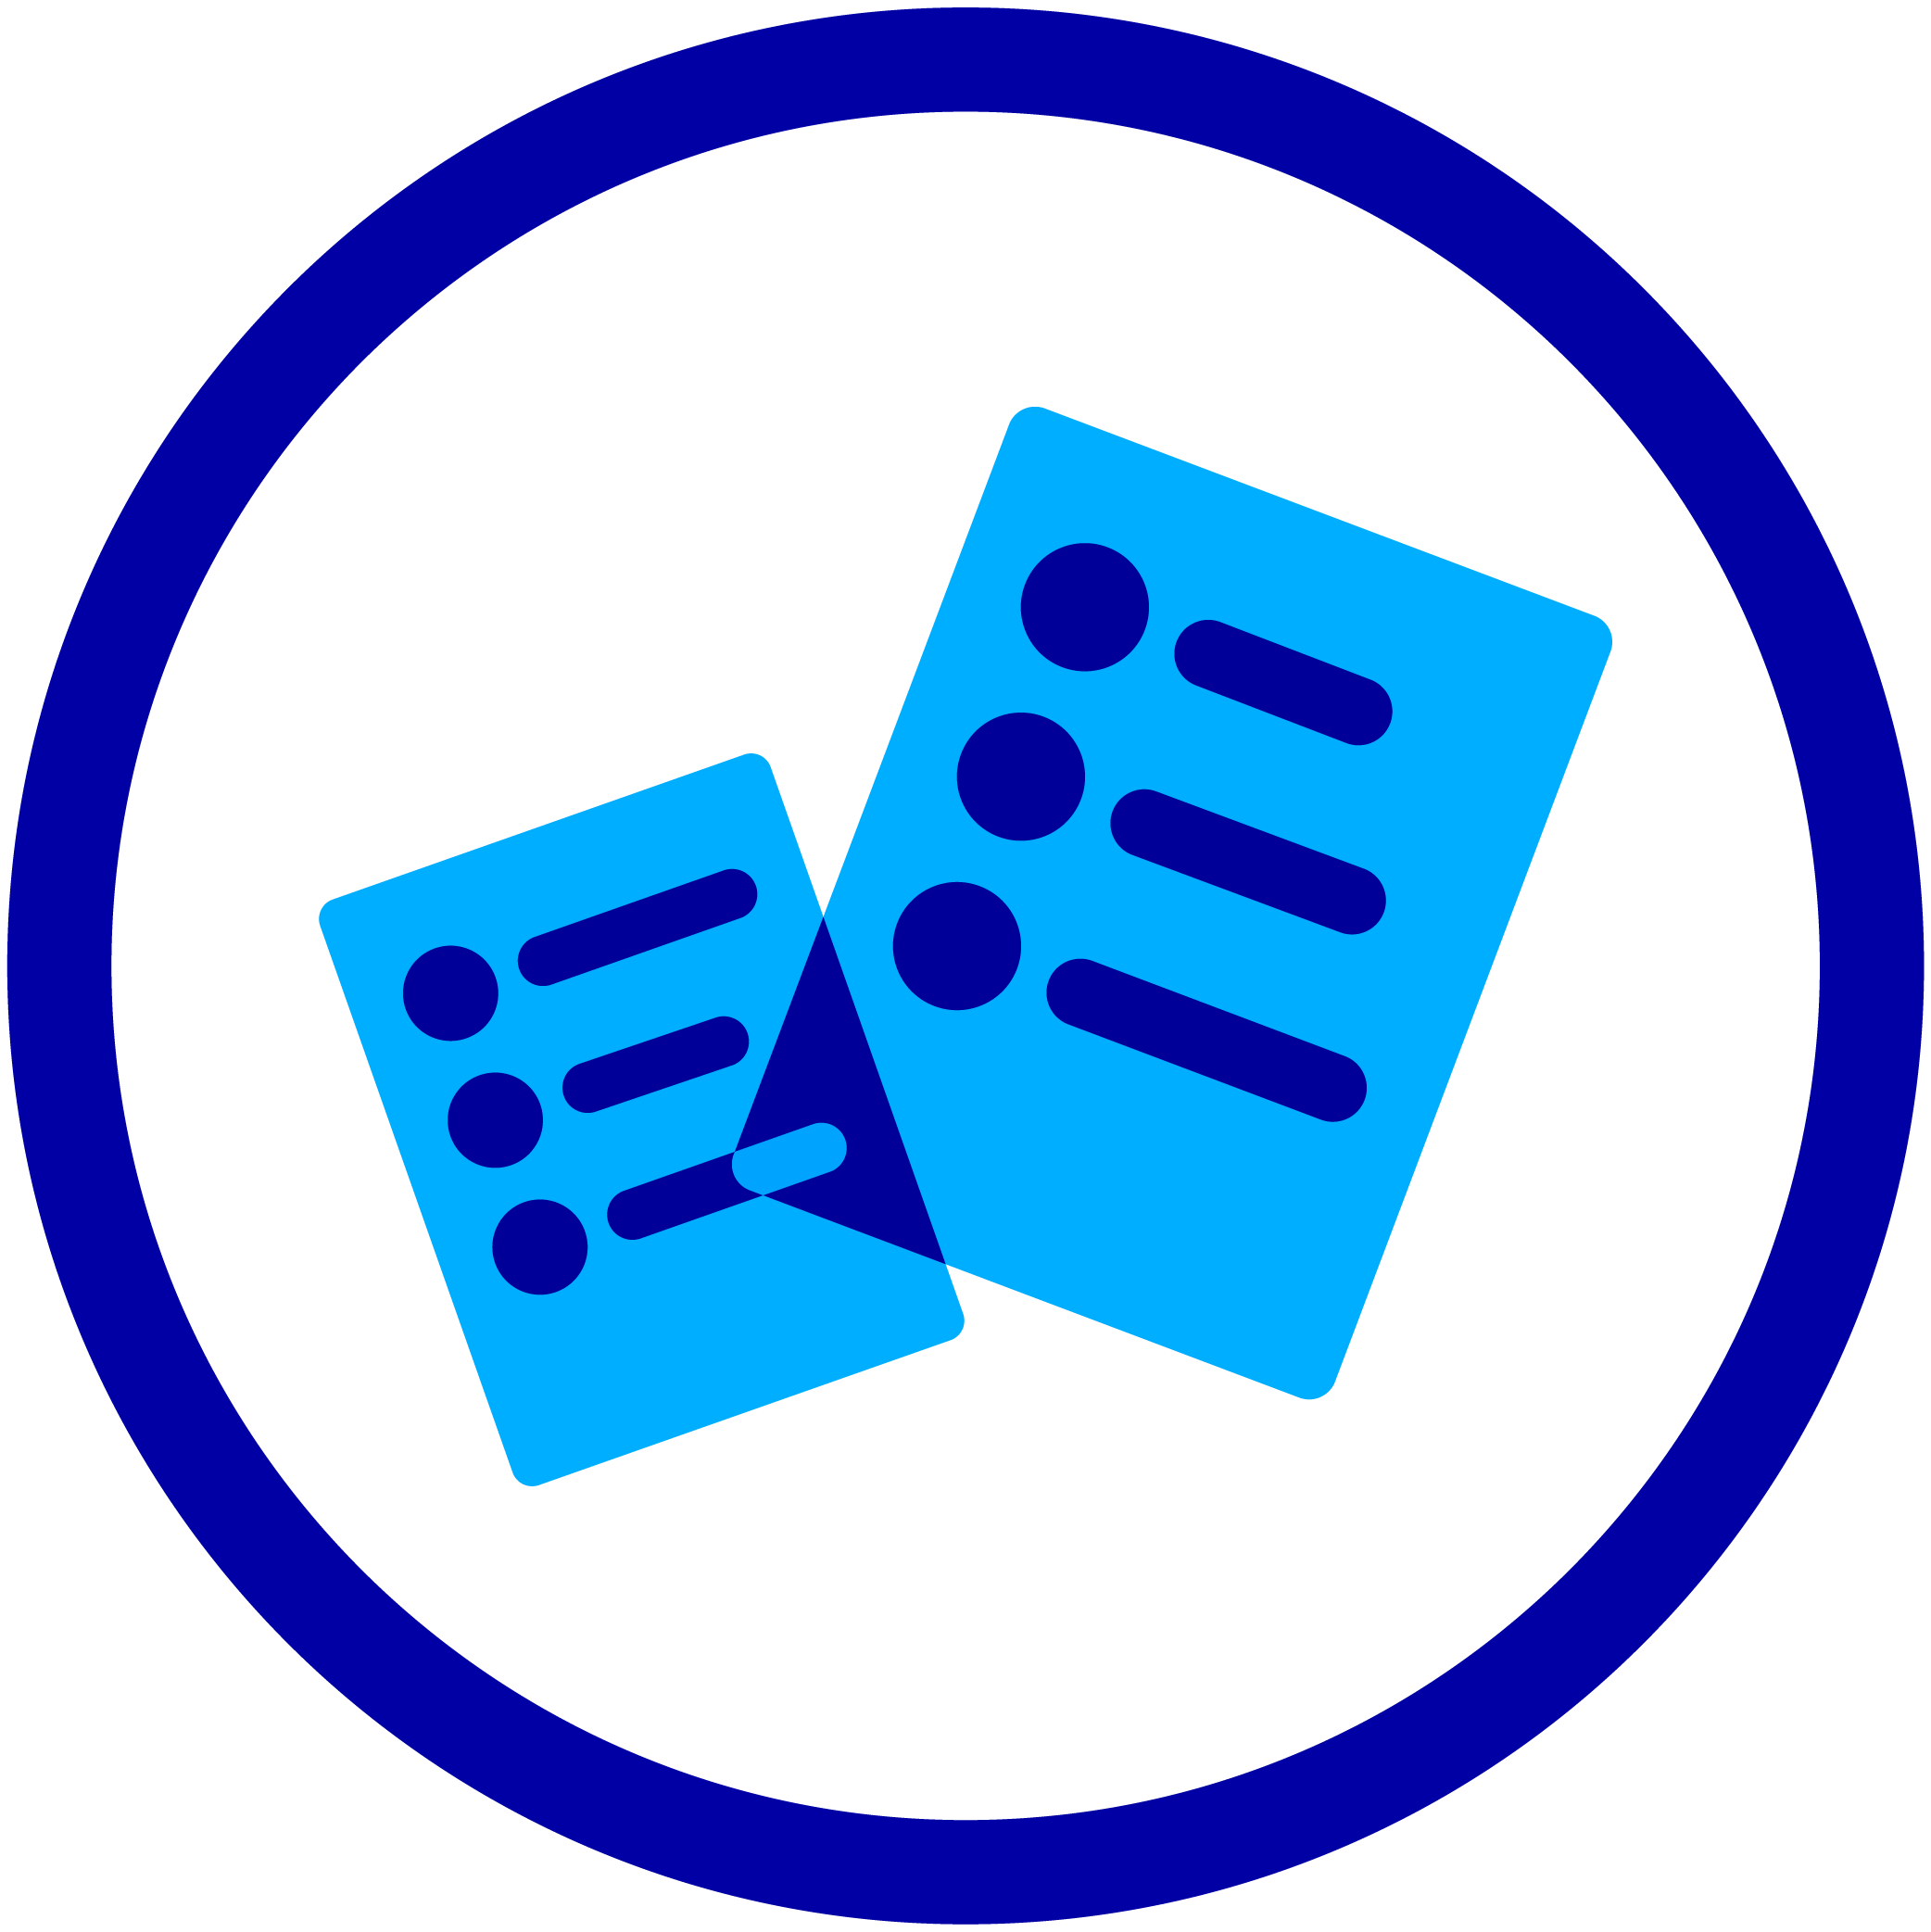 https://global.fi-group.com/wp-content/uploads/sites/20/2021/09/blue-icons-set_1-07.png